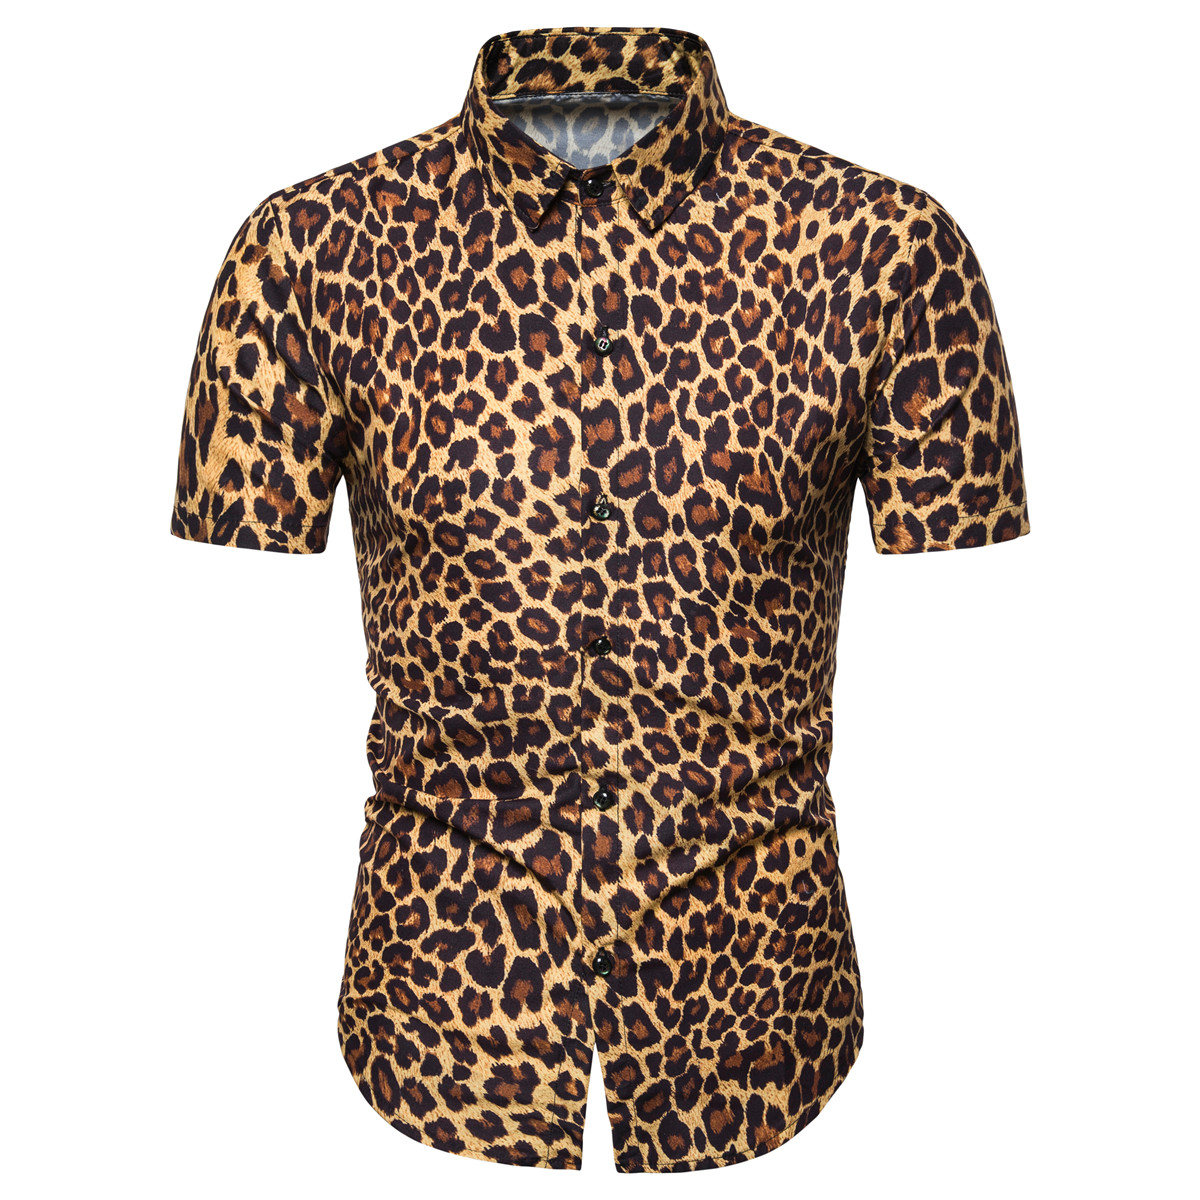 Miicoopie Mens Short Sleeve Shirts For Summer Leopard Print Casual Fashion Men Shirts